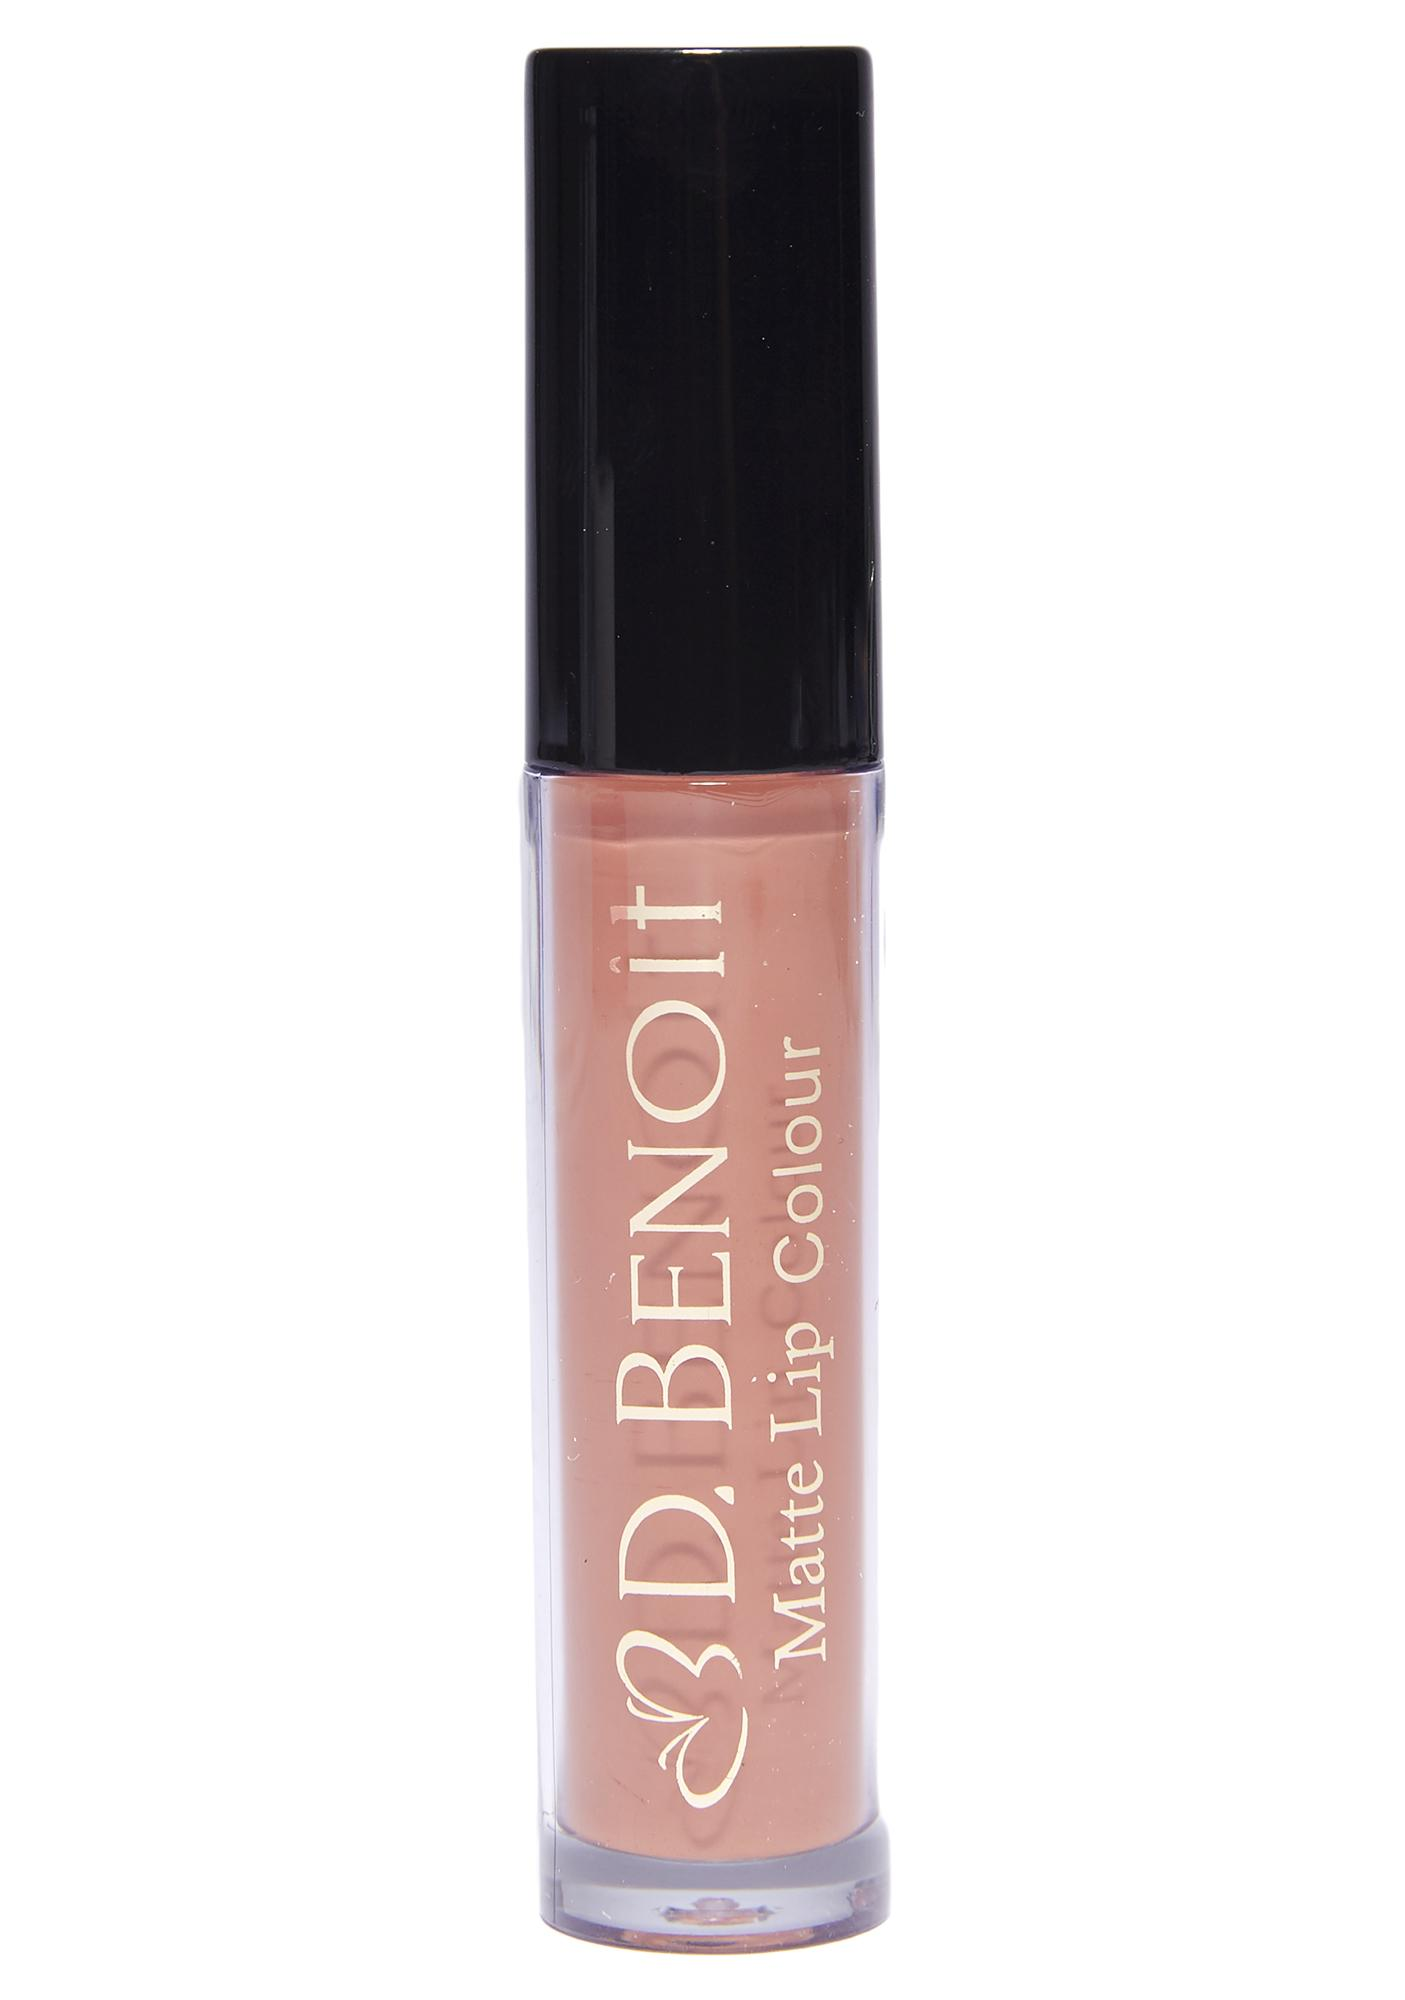 D. Benoit Perfection II Matte Lip Colour